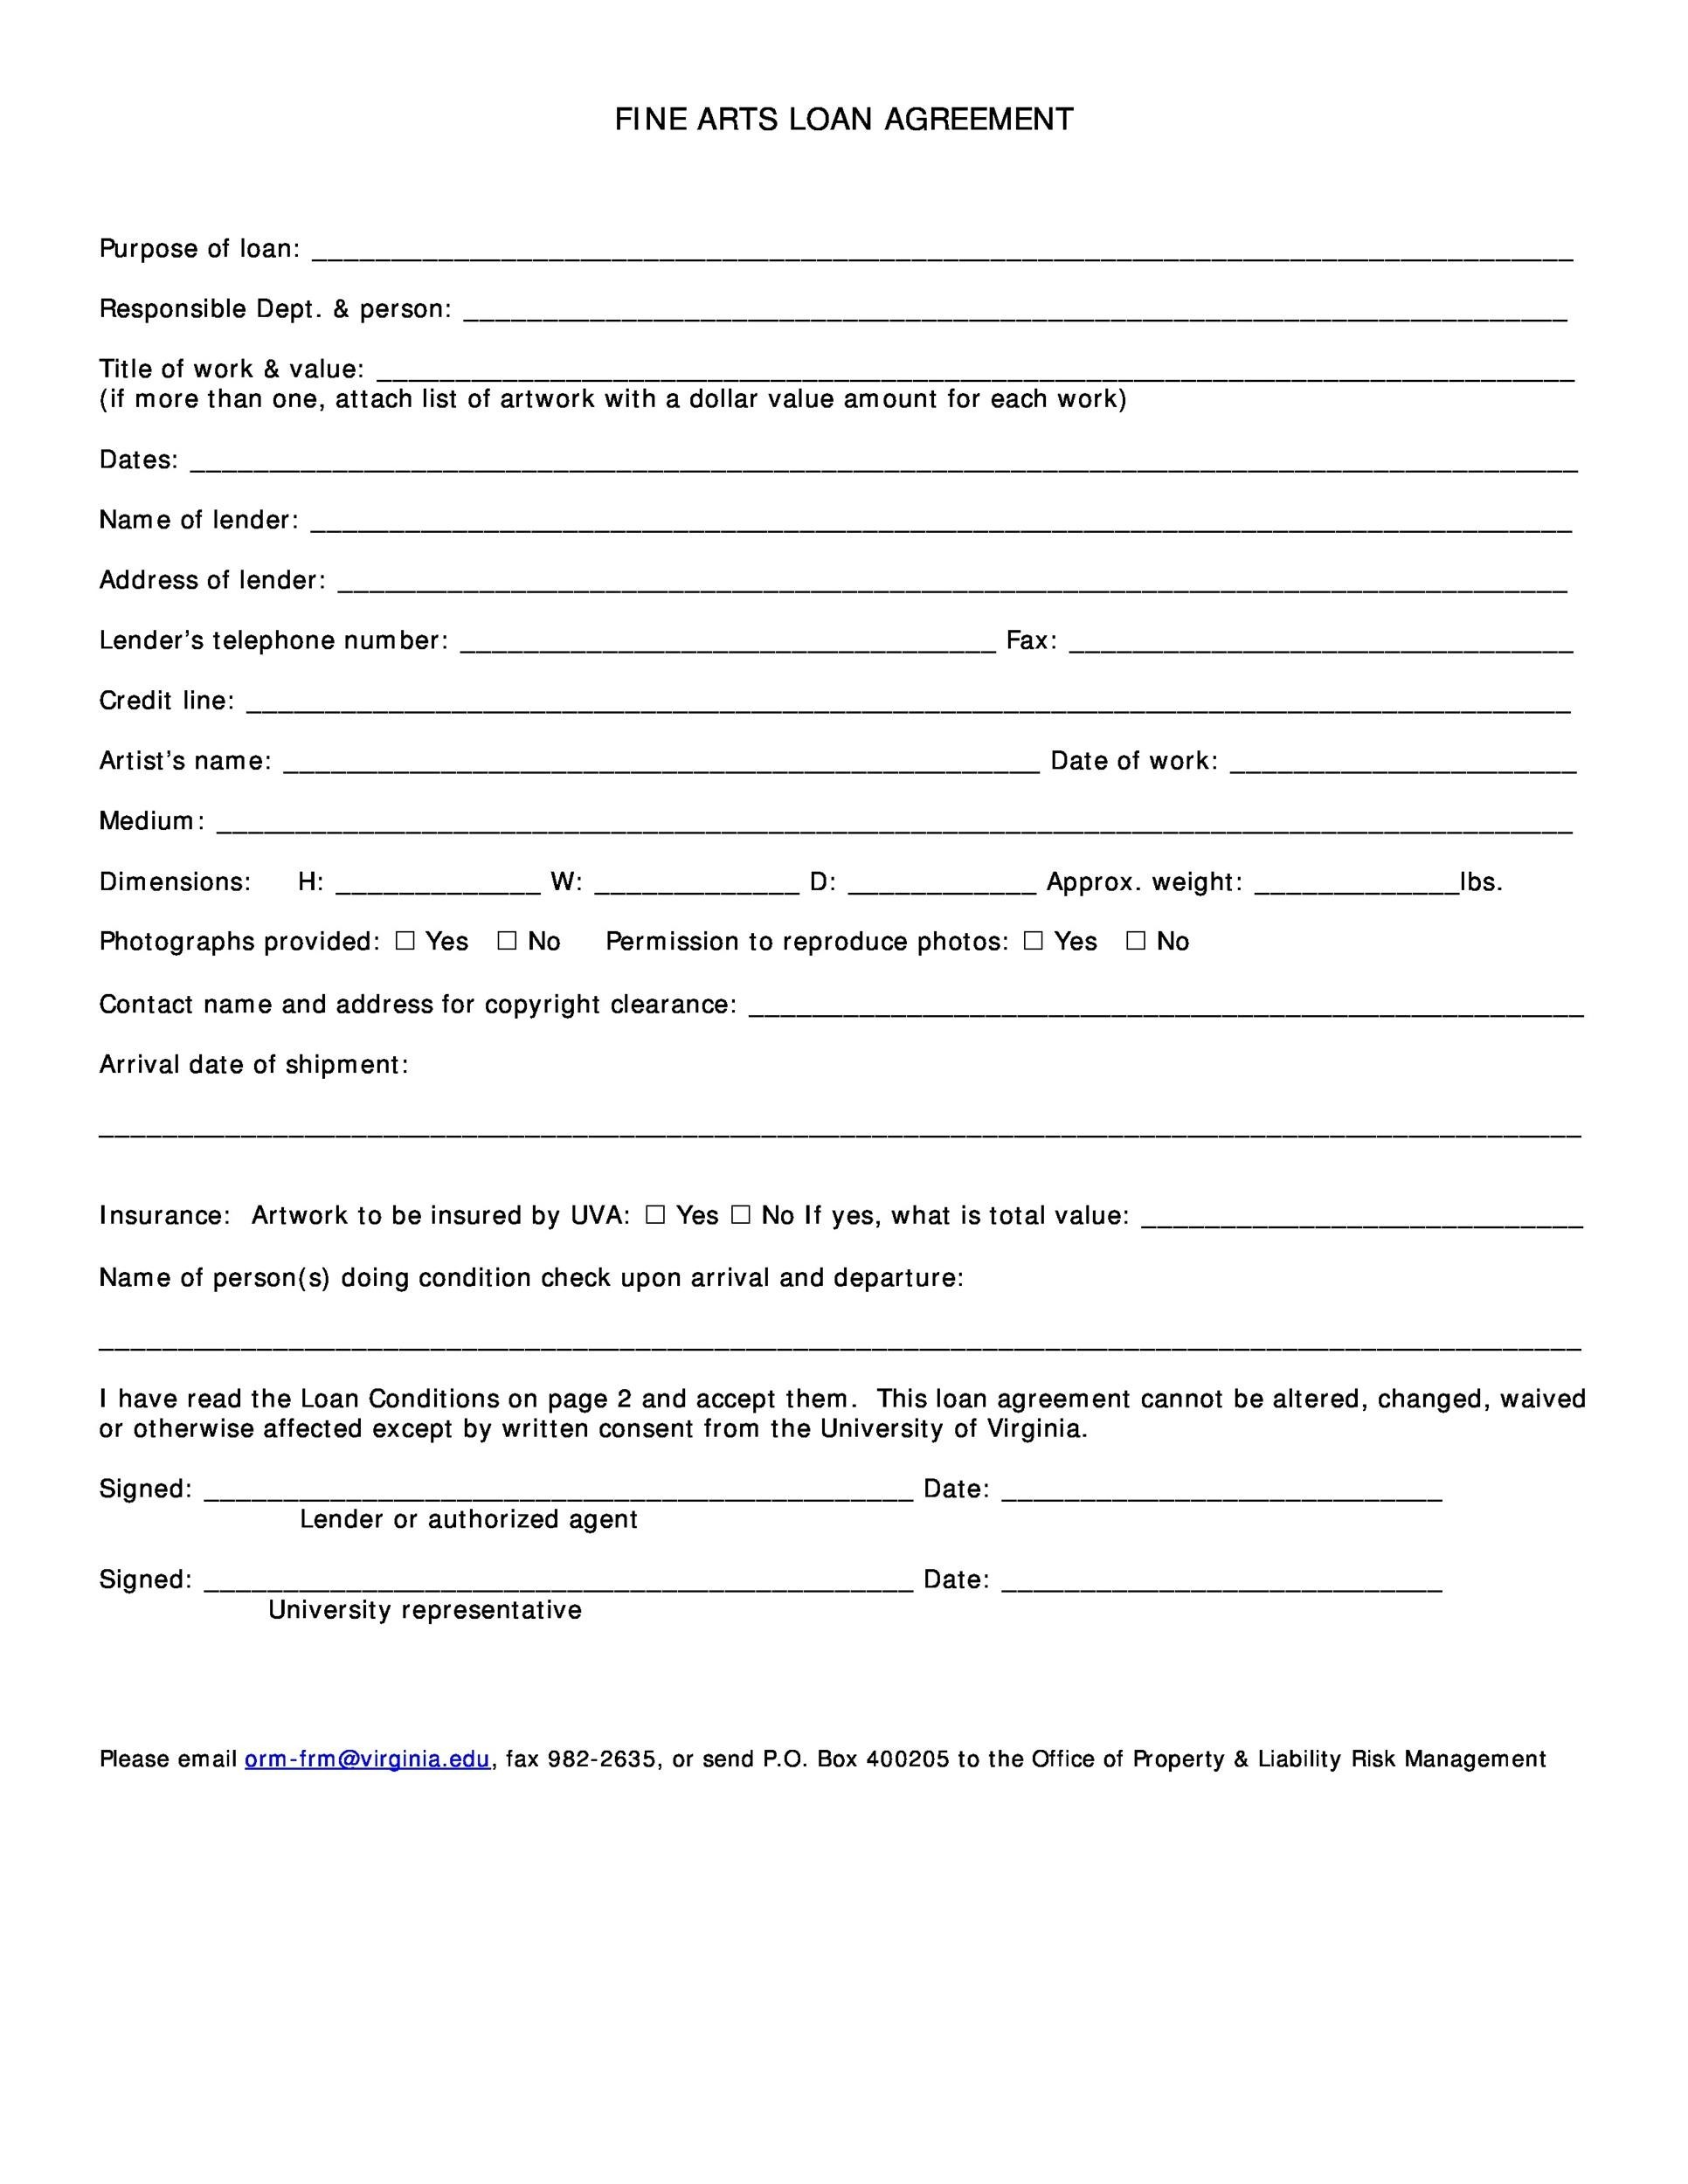 Free Loan Agreement Template 29  Free Loan Agreement